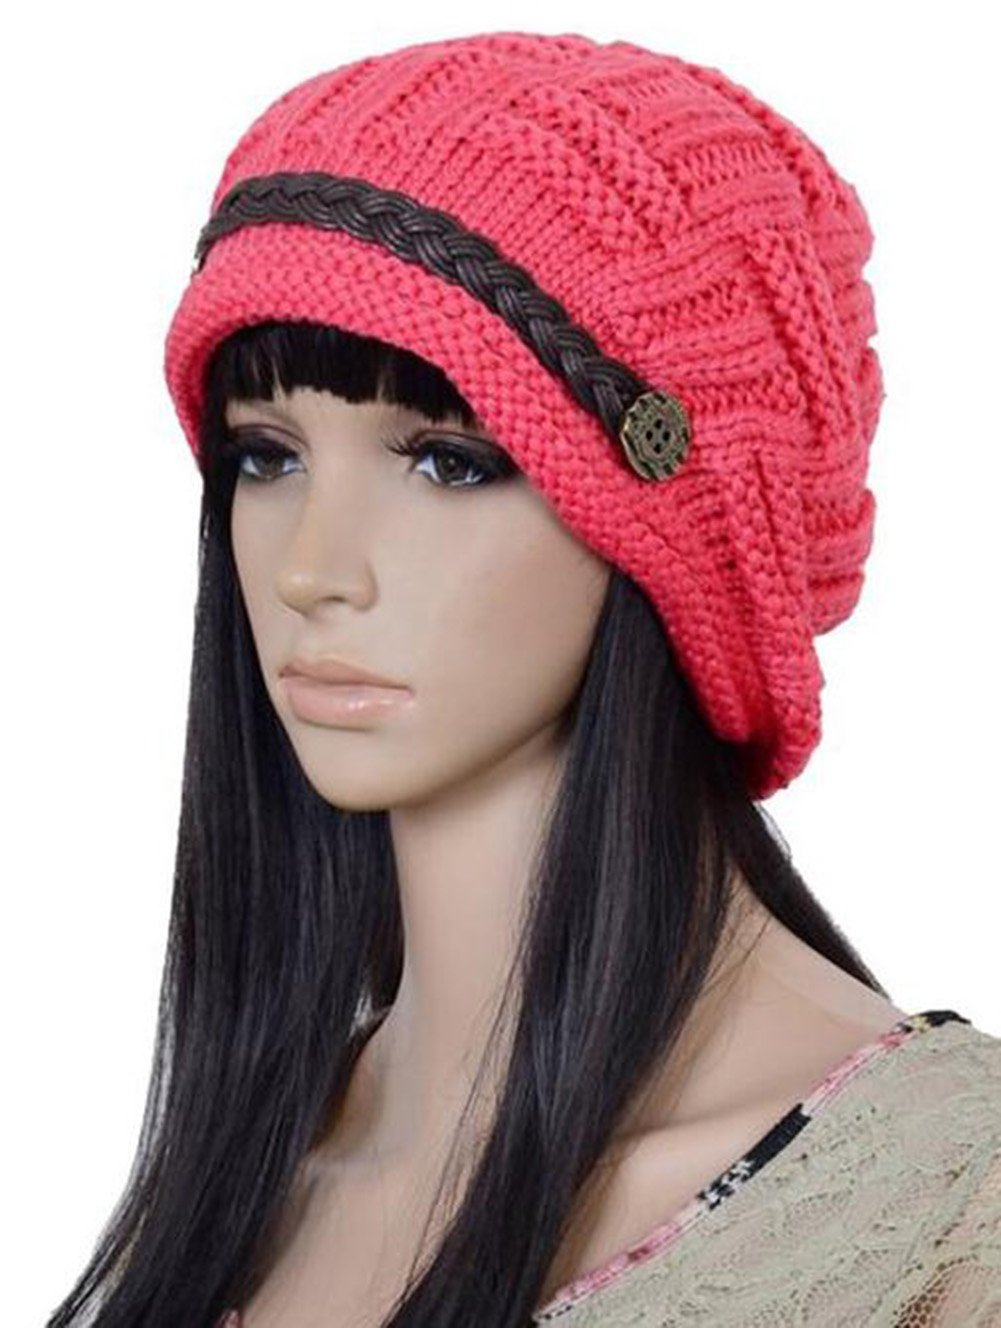 Cdet 1X Fashion Women Knitted Winter Warm Flower Beanie Ladies Brim Ski Cap Bowler Hat Slouchy Cap Black